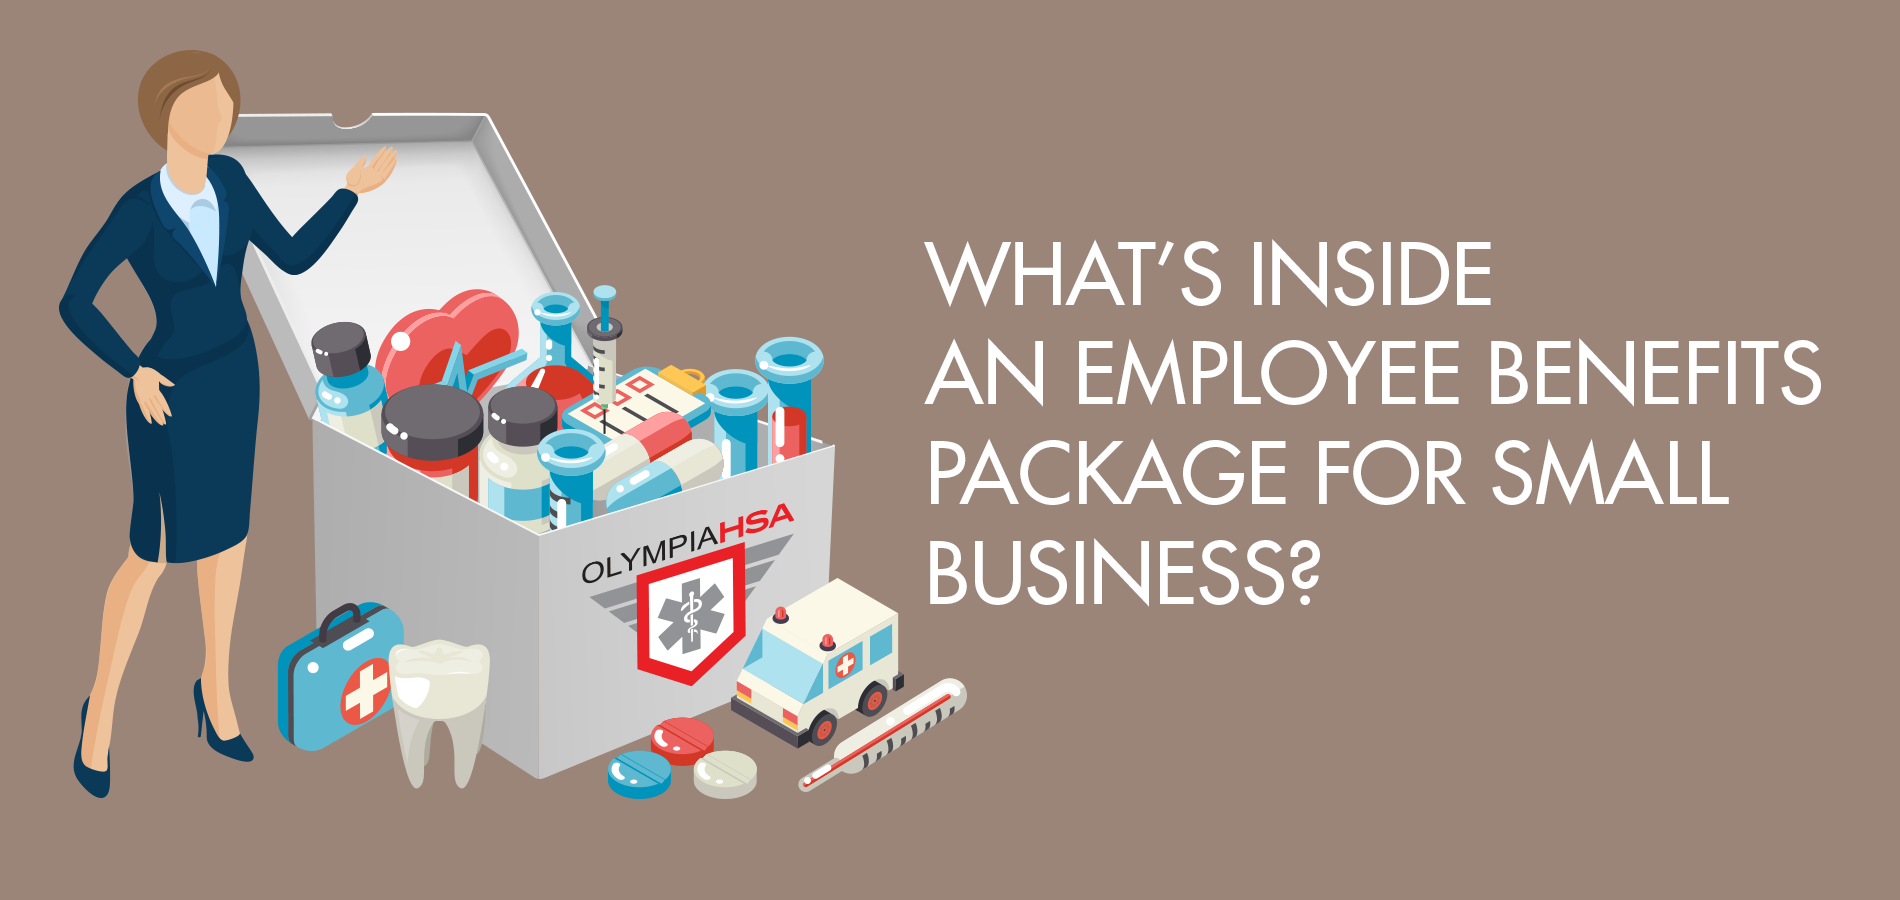 Whats inside an Employee Benefits Package for Small Business